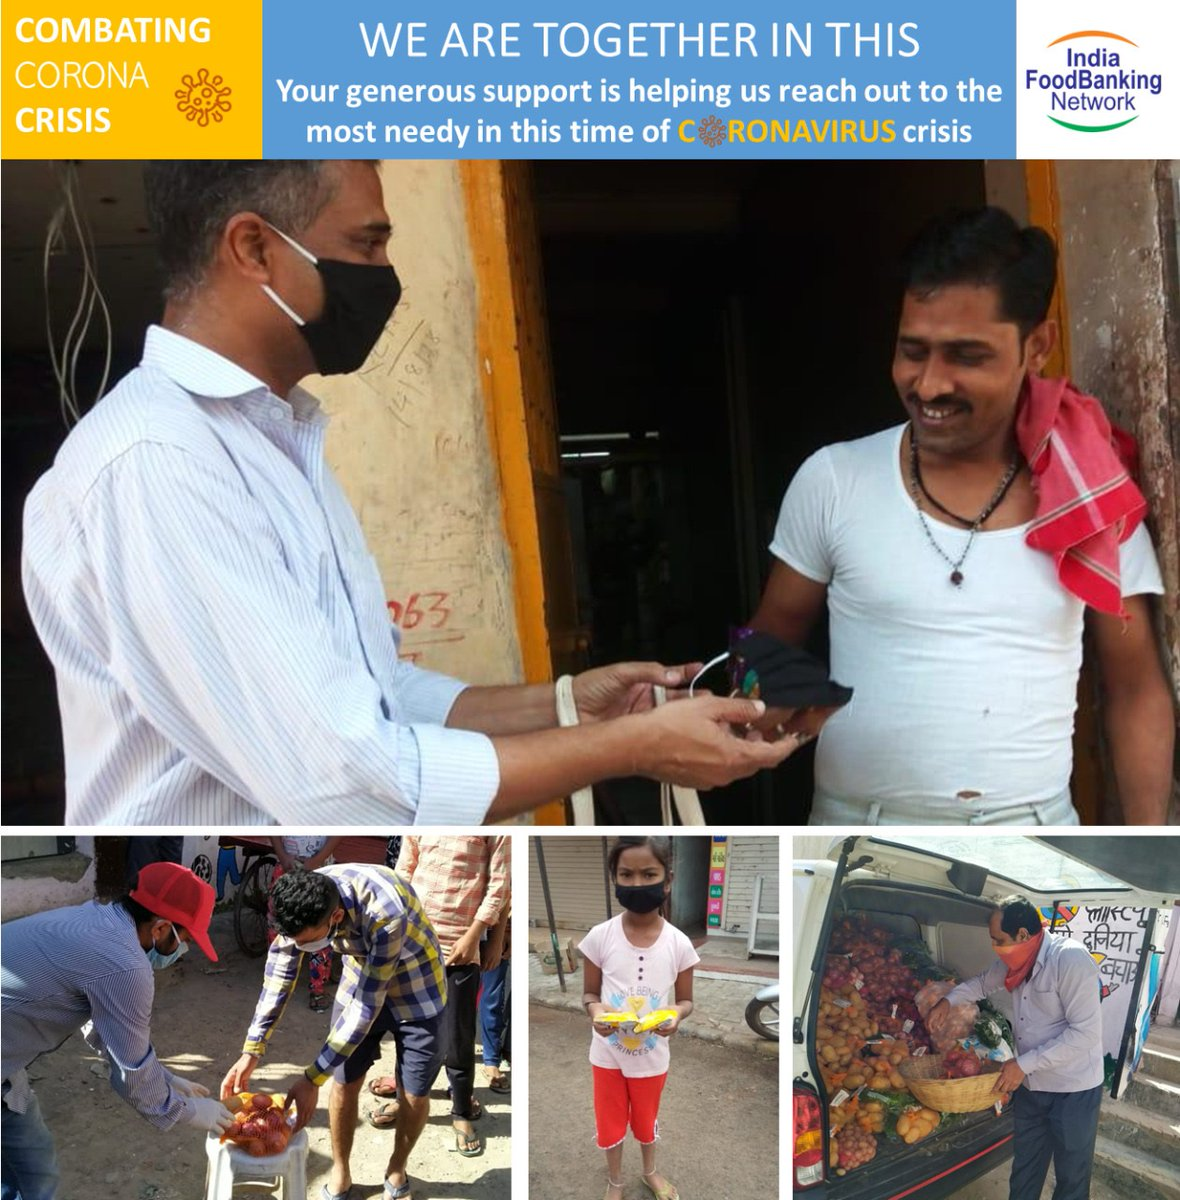 #COVID2019india is the biggest challenge of our times.  India Food Banking Network is helping the most vulnerable during this crisis. You can donate to enable us to provide rations and packaged food through our 14 foodbanks.  Visit our website http://www.indiafoodbanking.orgpic.twitter.com/9WslBBZgba